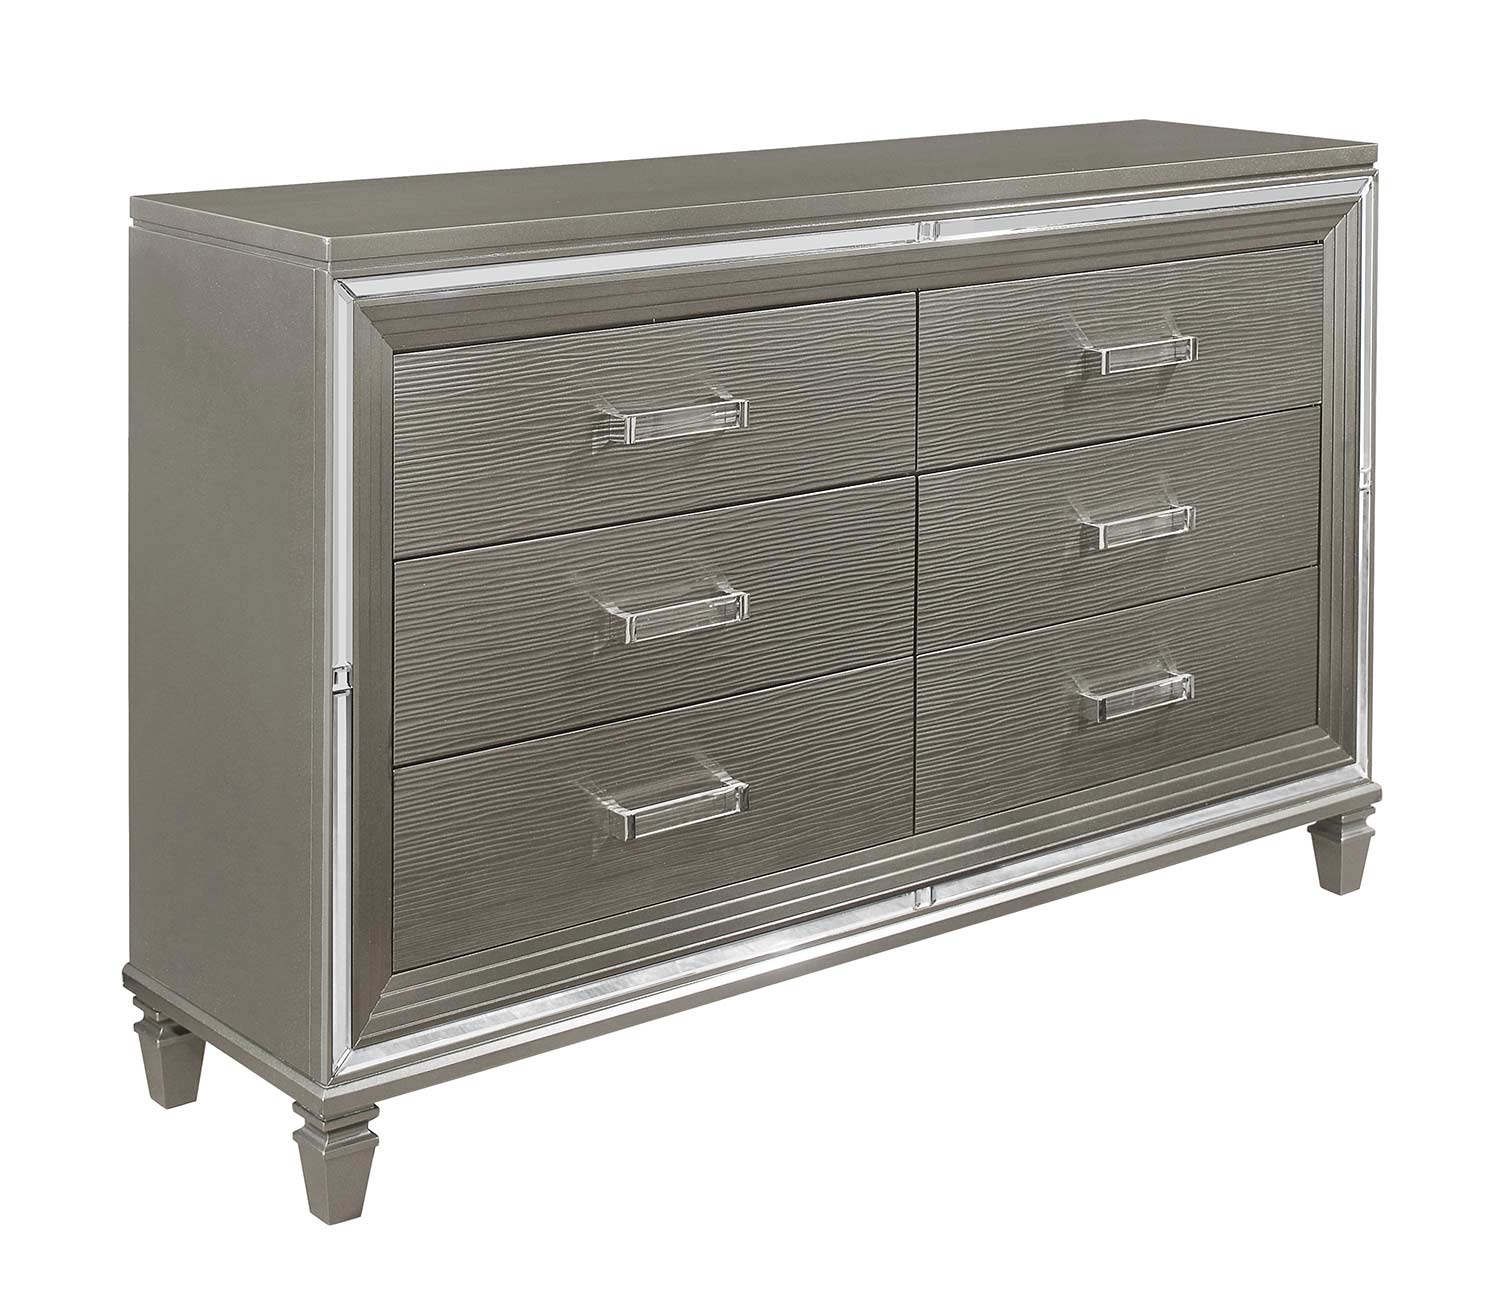 Homelegance Tamsin Dresser with 2 Hidden Jewelry Boxes - Silver-Gray Metallic